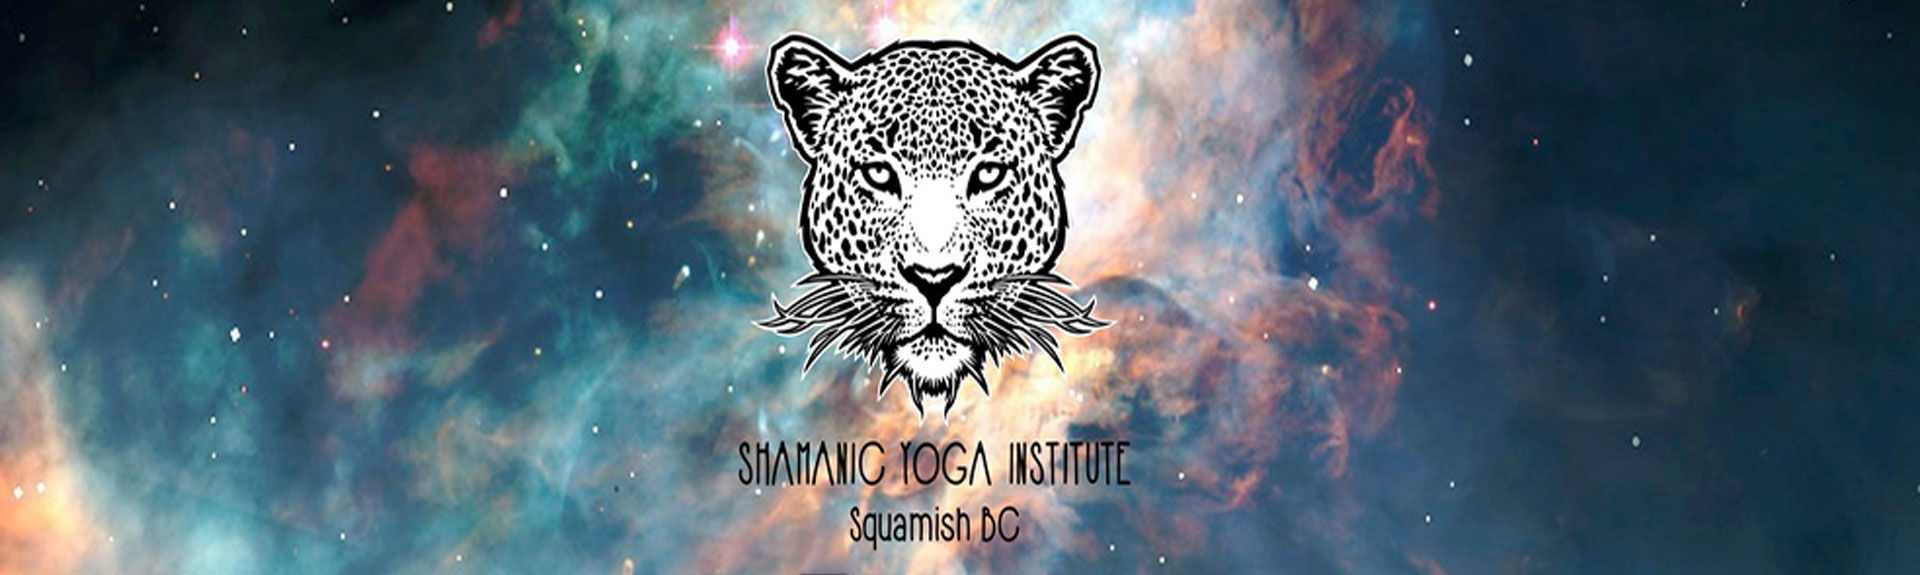 Shamanic Yoga Institute